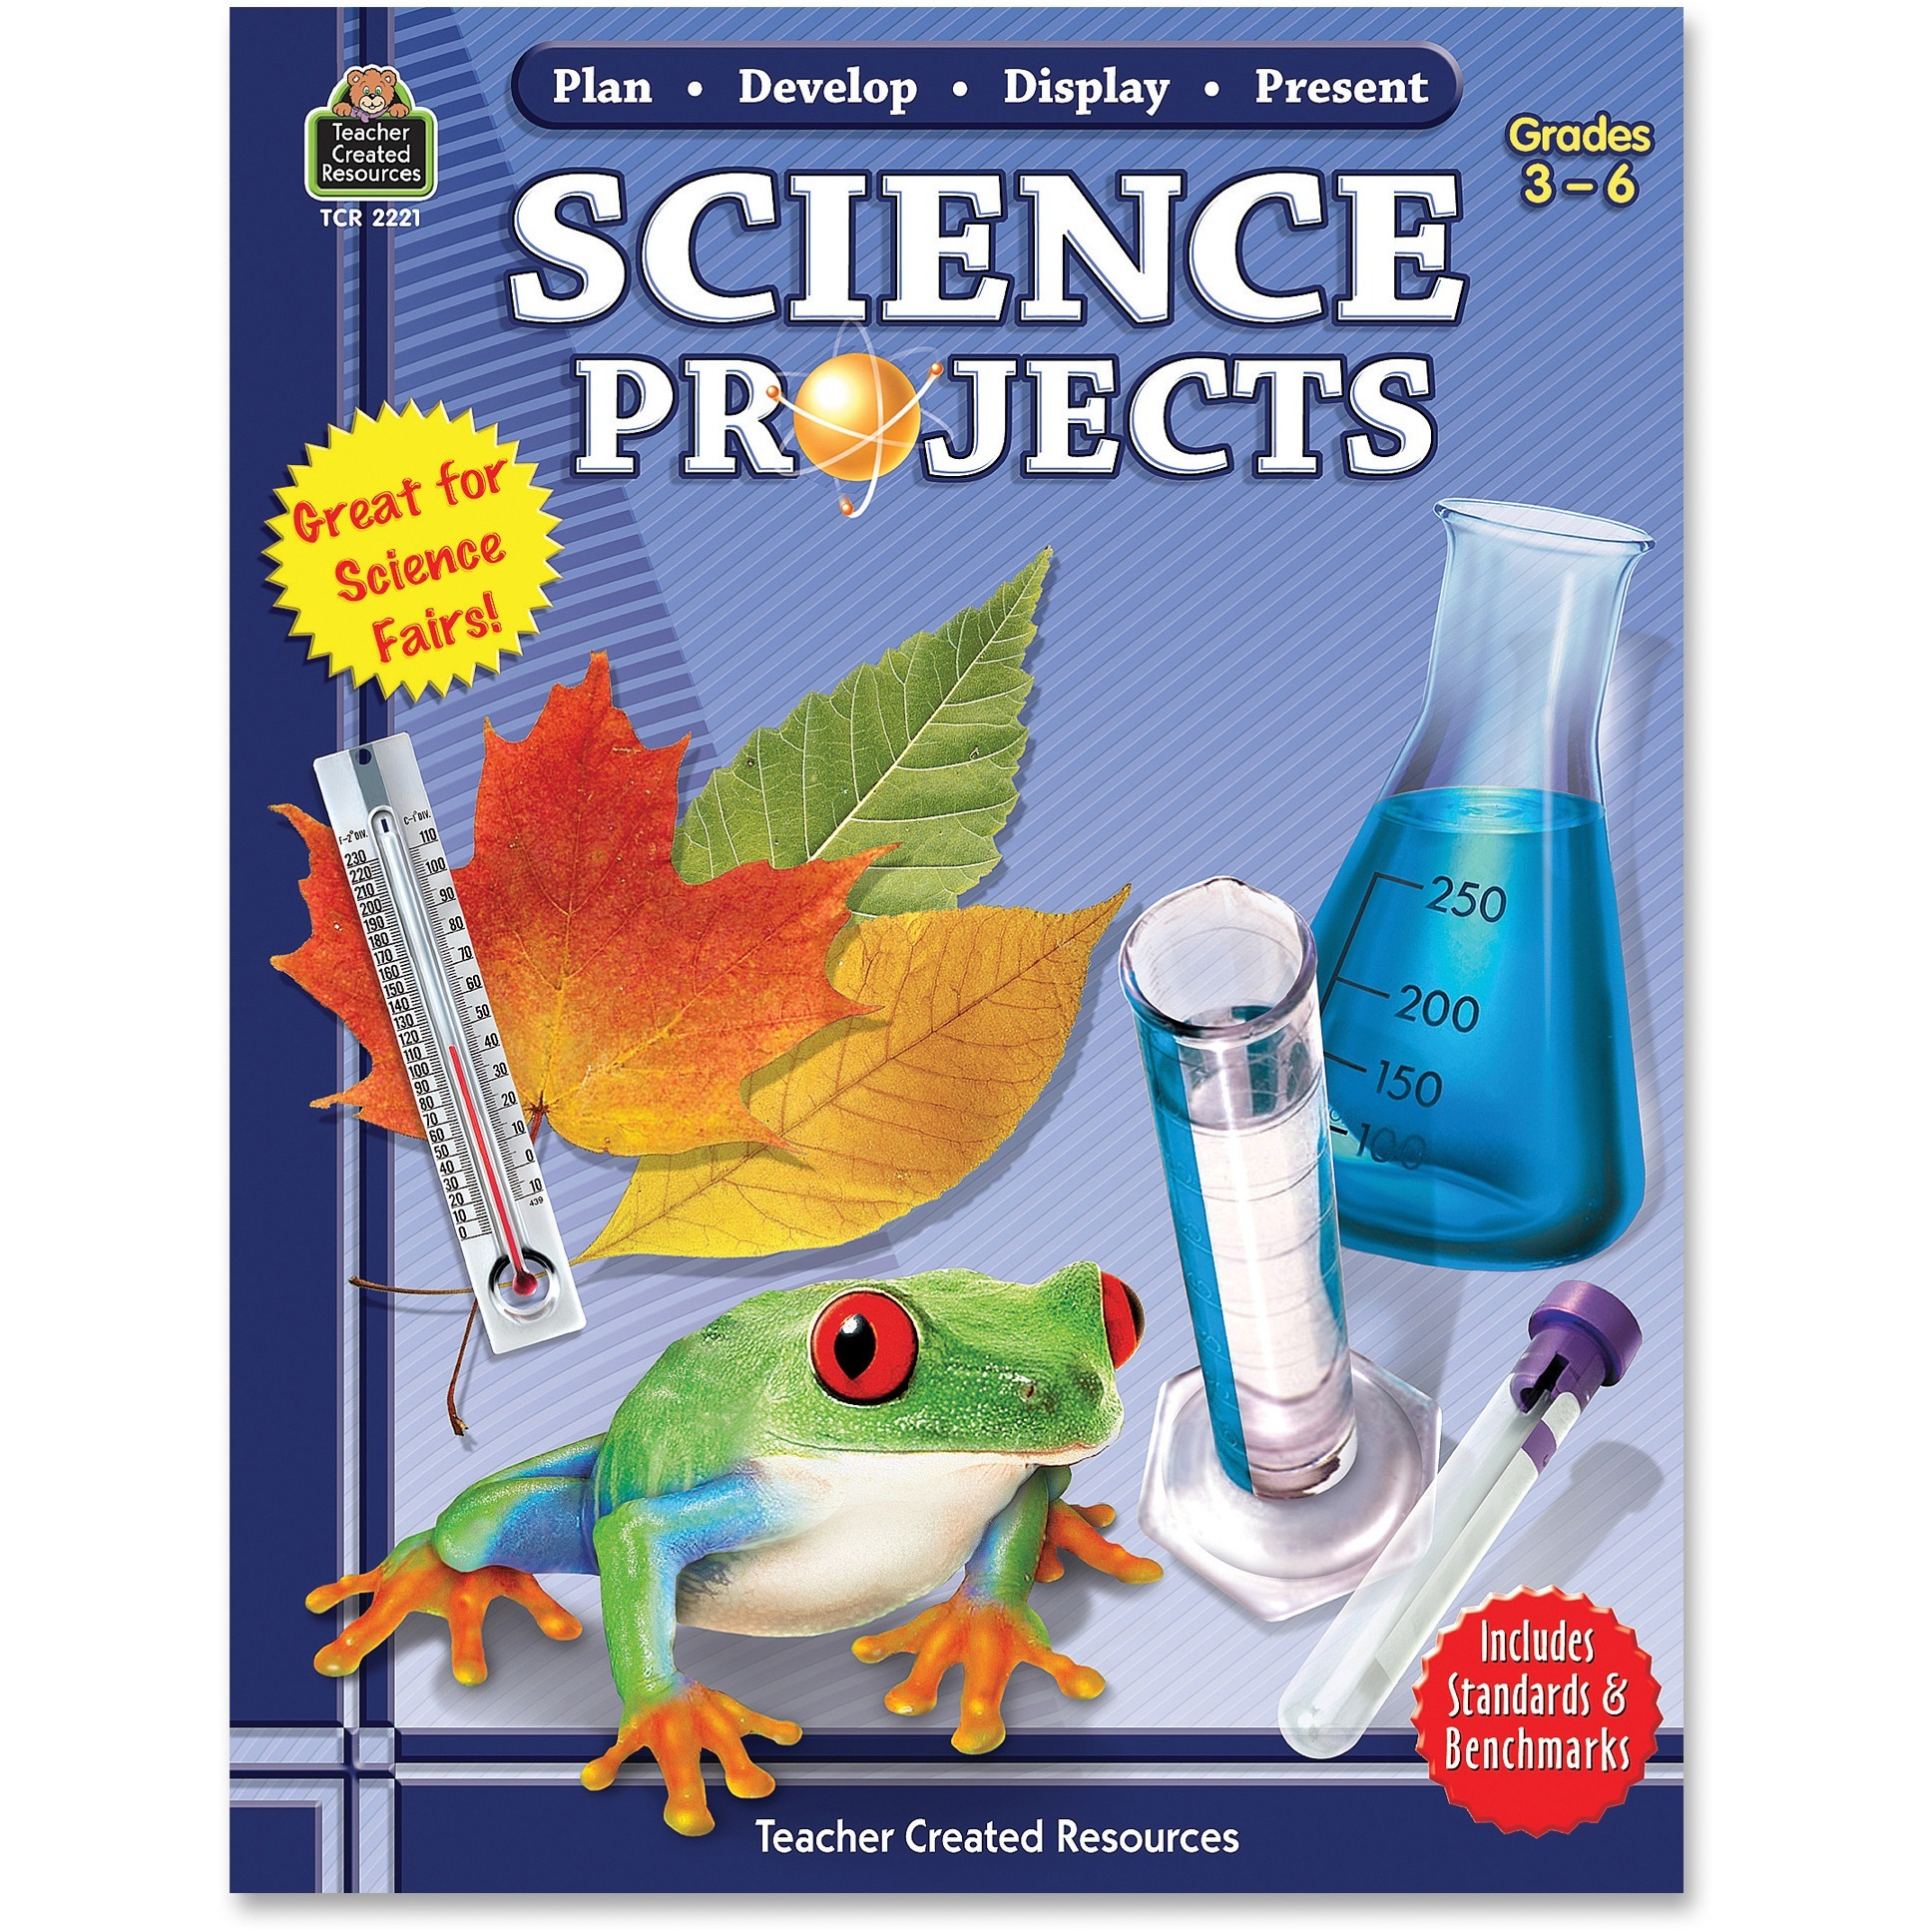 Teacher Created Resources, TCR2221, Gr 3-6 Science Projects Book, 1 Each